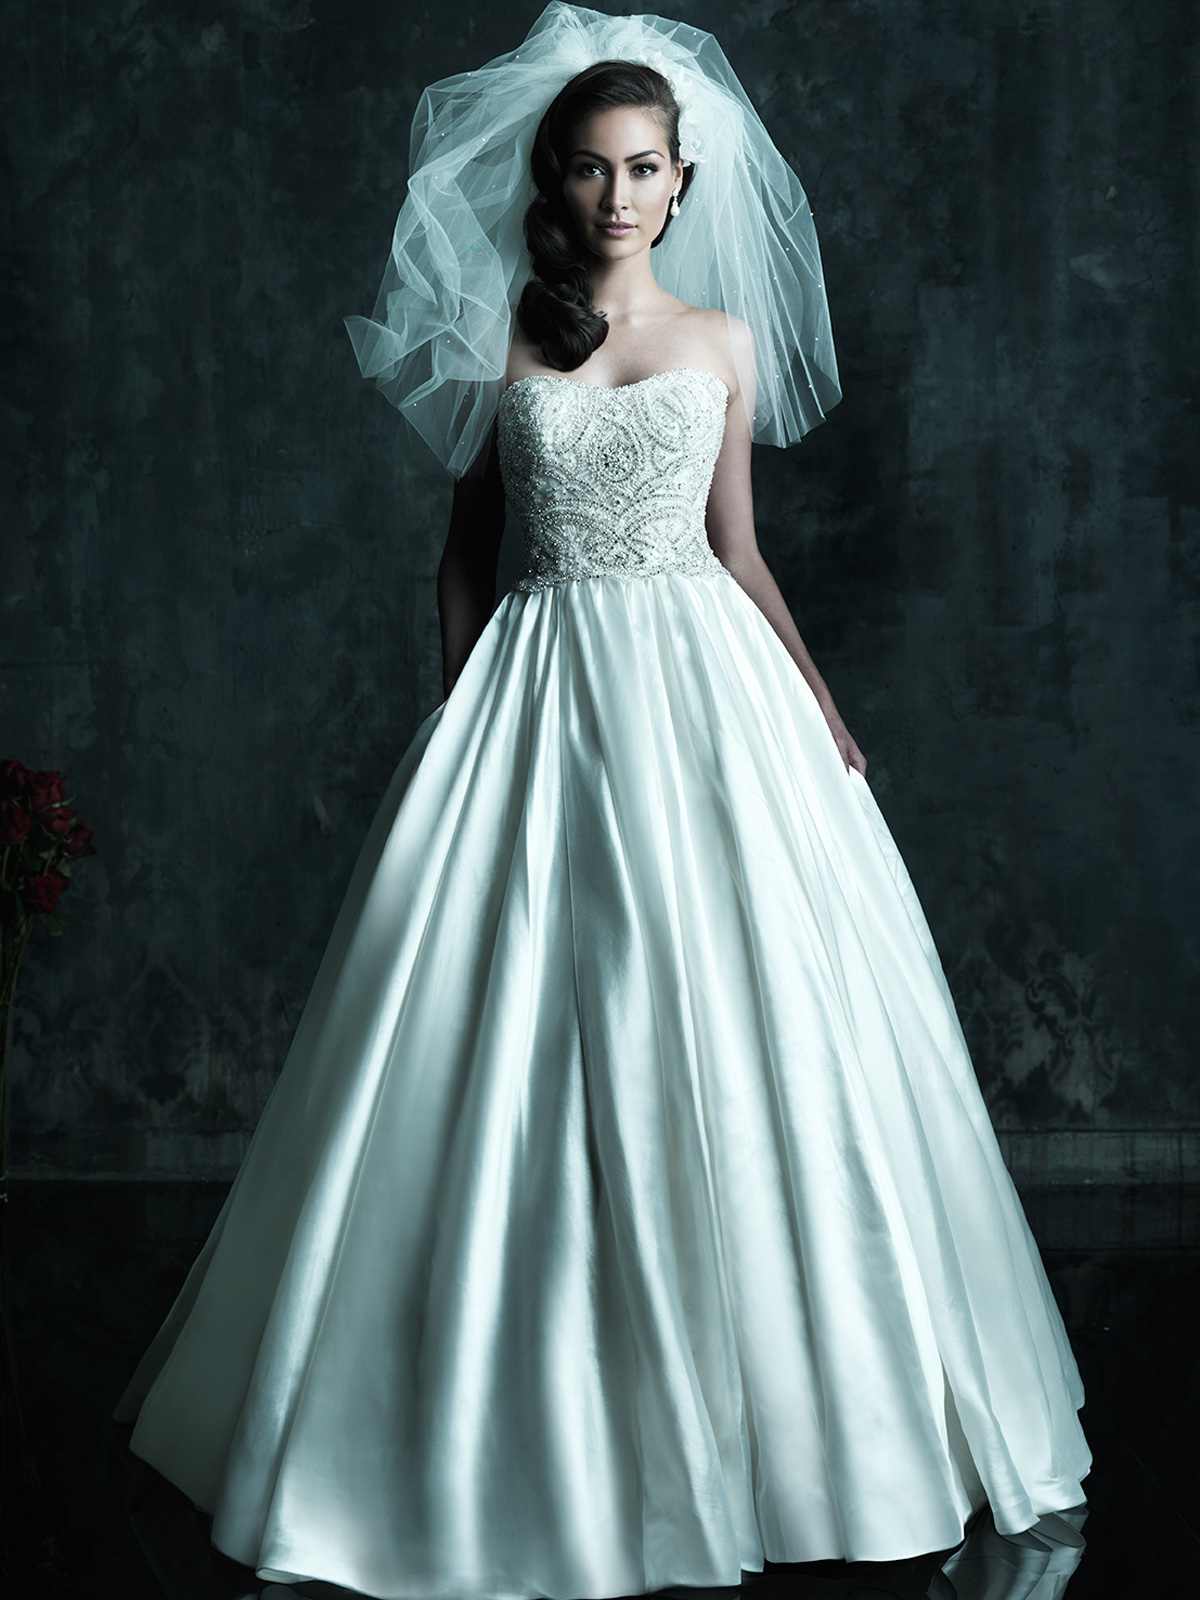 Strapless Gathered Satin Skirt Allure Couture Wedding Ball Gown C247 ...